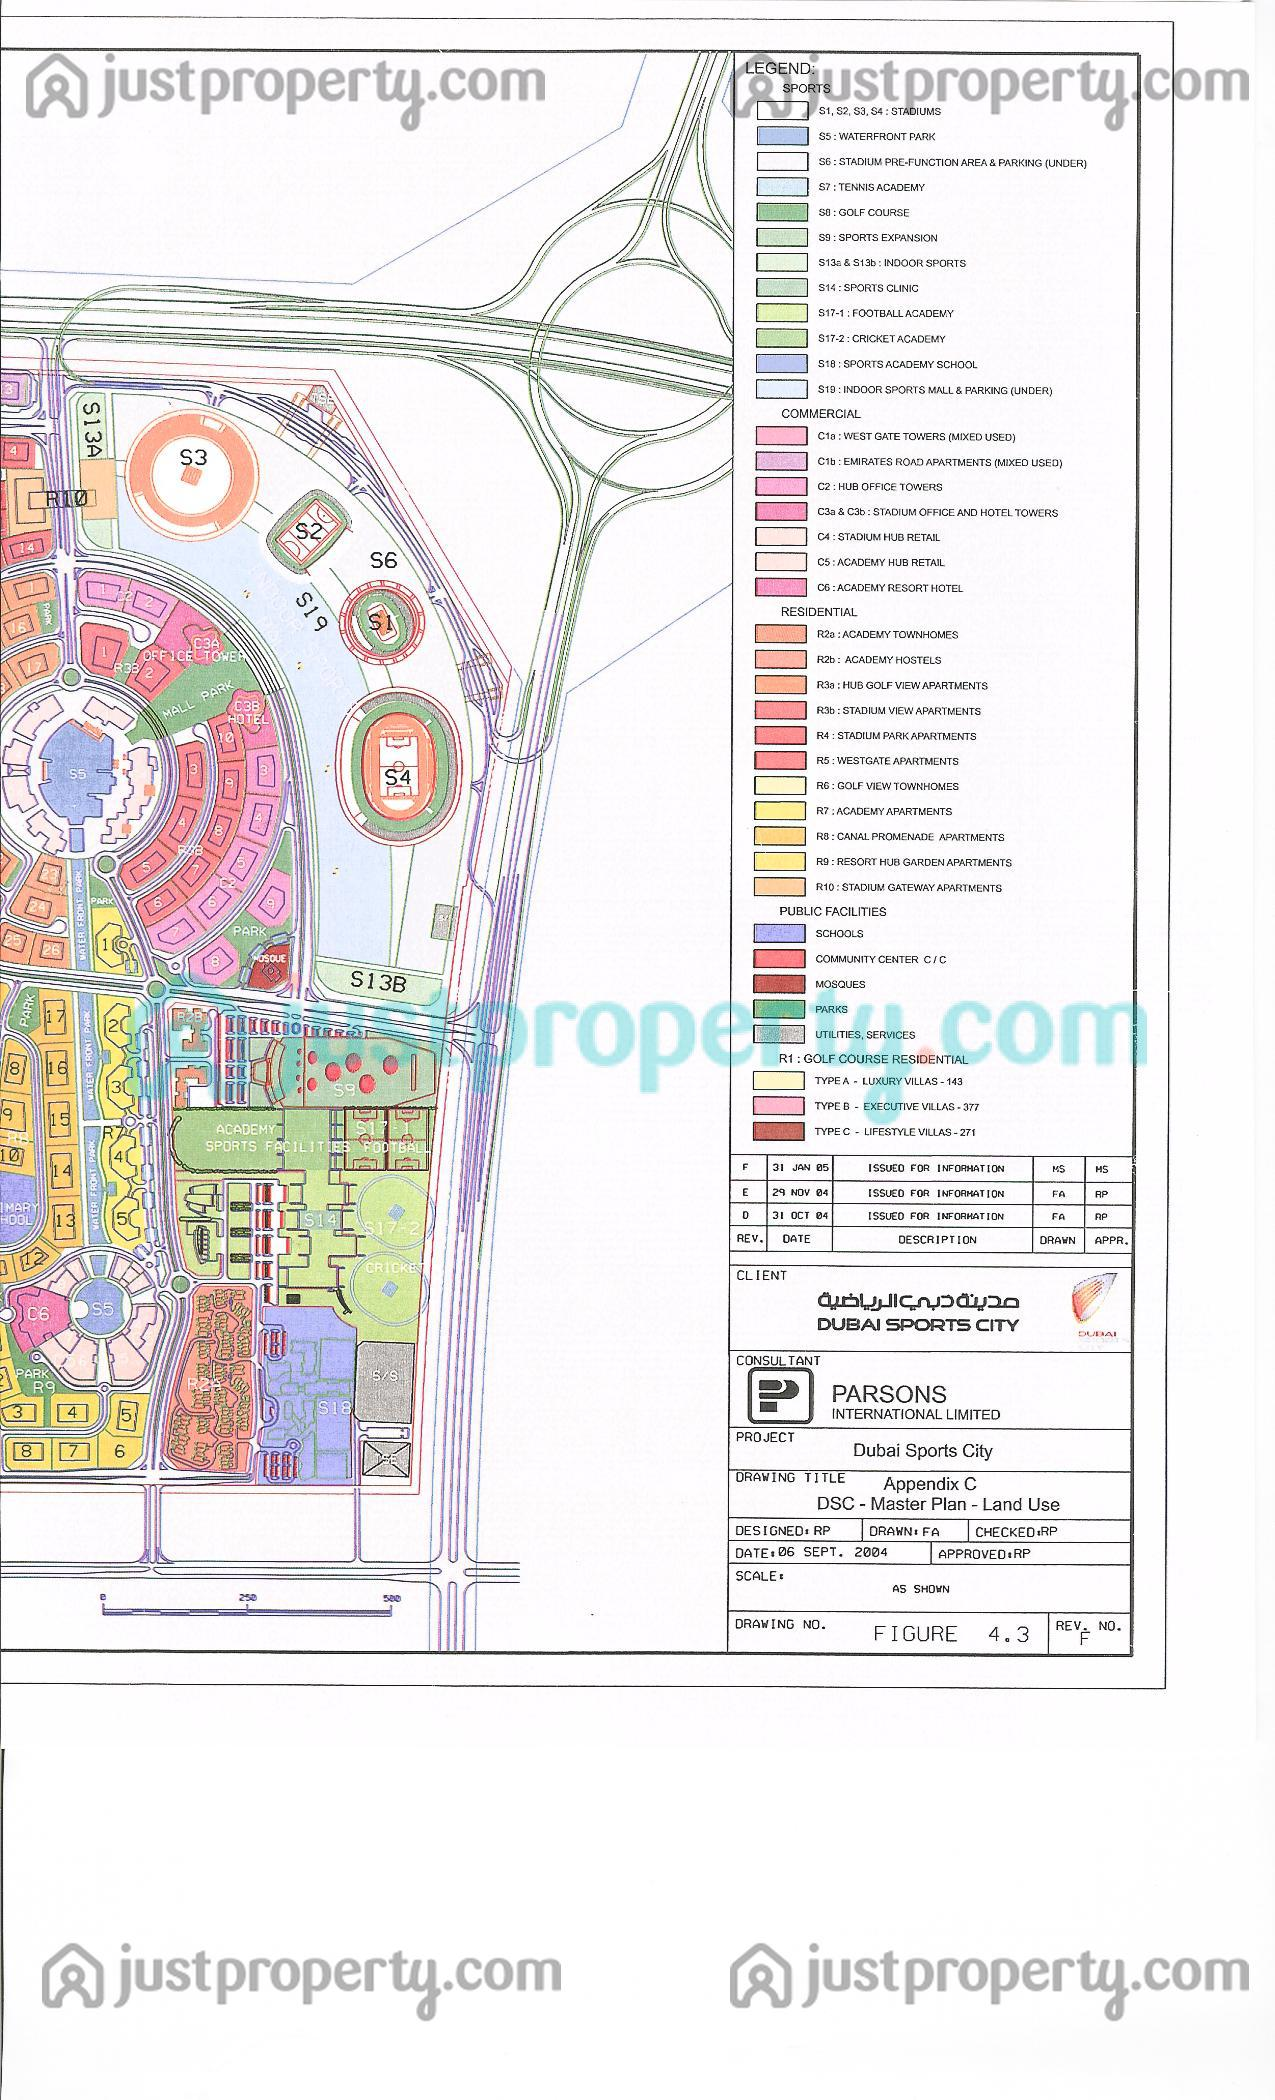 Ravishing Dubai Sport City Floor Plans  Justpropertycom With Great Floor Plans For Dubai Sport City With Amazing Garden Treasure Hunt Also Native Plants And Wildlife Gardens In Addition How Far Is Keukenhof Gardens From Amsterdam And Wooden Garden Arch With Planters As Well As Links Of London Covent Garden Additionally Penang Tropical Spice Garden From Justpropertycom With   Great Dubai Sport City Floor Plans  Justpropertycom With Amazing Floor Plans For Dubai Sport City And Ravishing Garden Treasure Hunt Also Native Plants And Wildlife Gardens In Addition How Far Is Keukenhof Gardens From Amsterdam From Justpropertycom